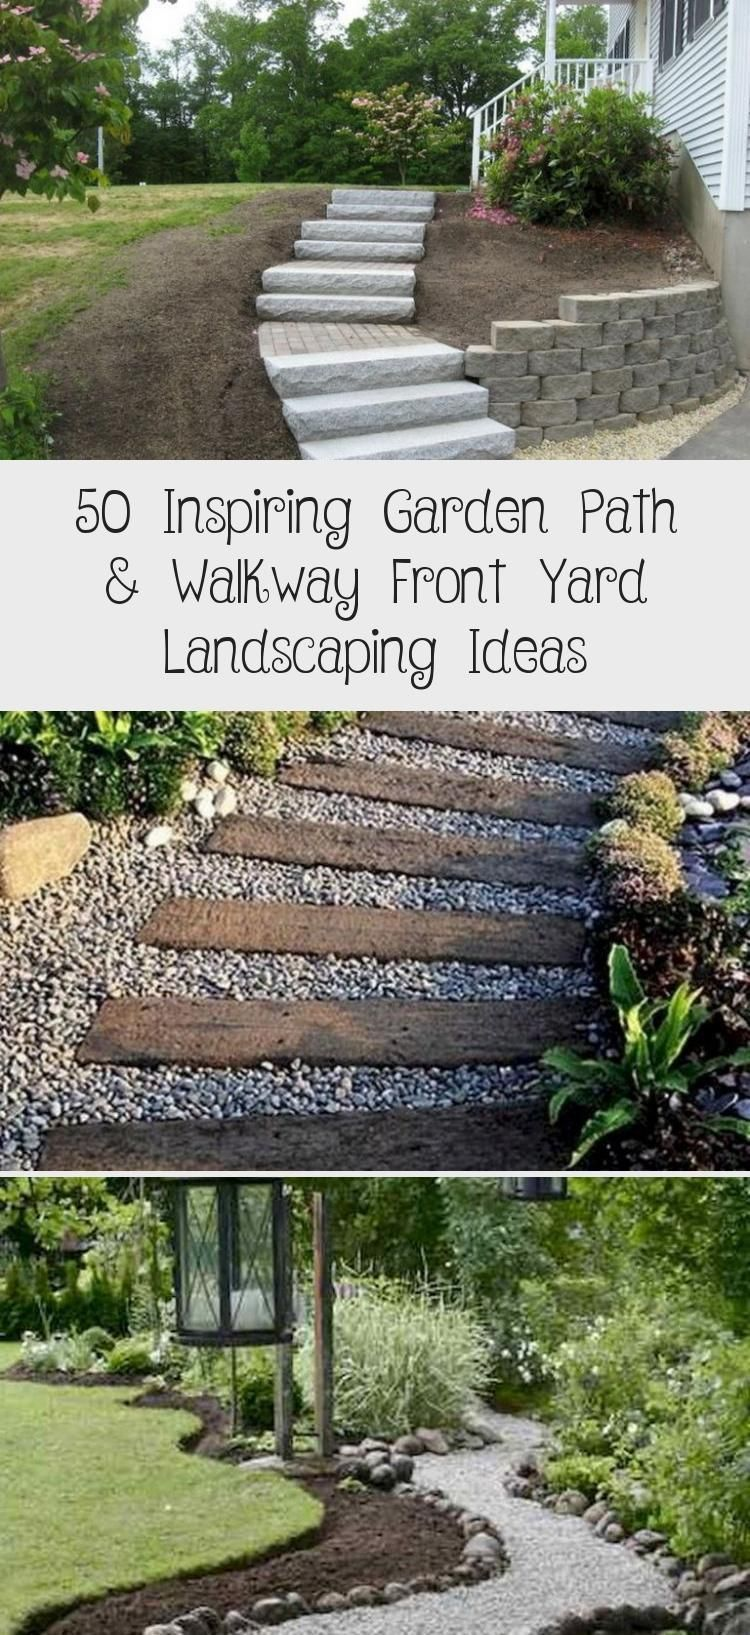 Photo of 50 Inspiring Garden Path & Walkway Front Yard Landscaping Ideas – Architecture